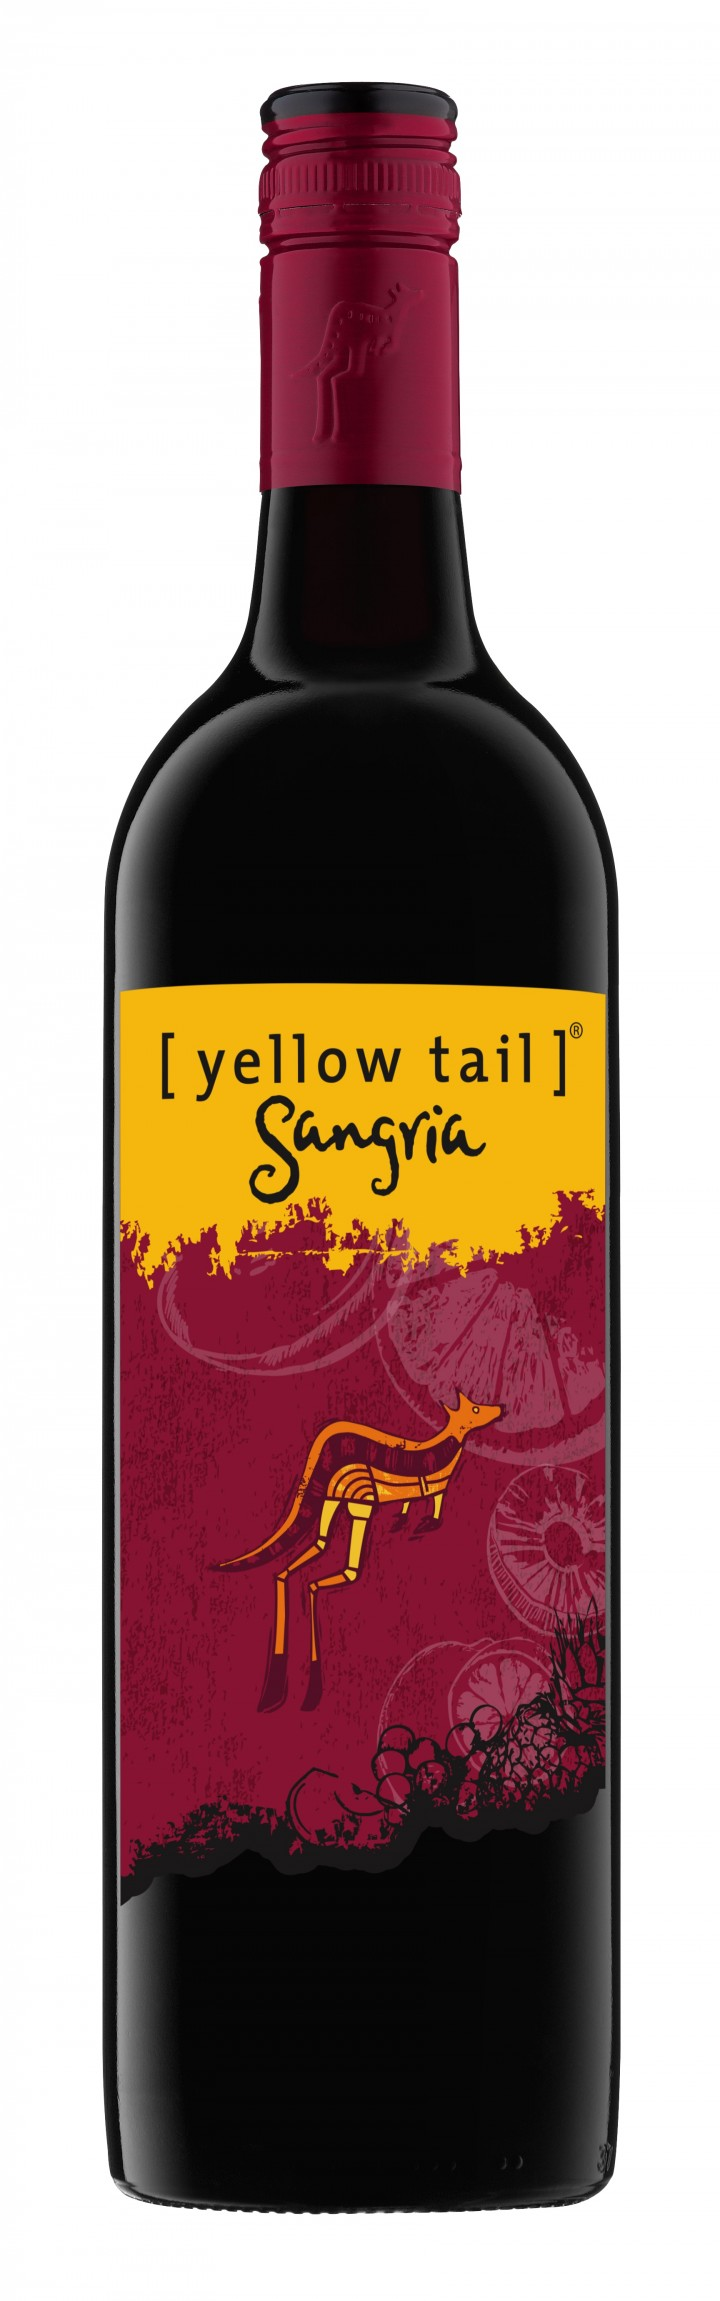 Yellow Tail sangria had a very strong debut, depleting 88,000 cases in its first six months.